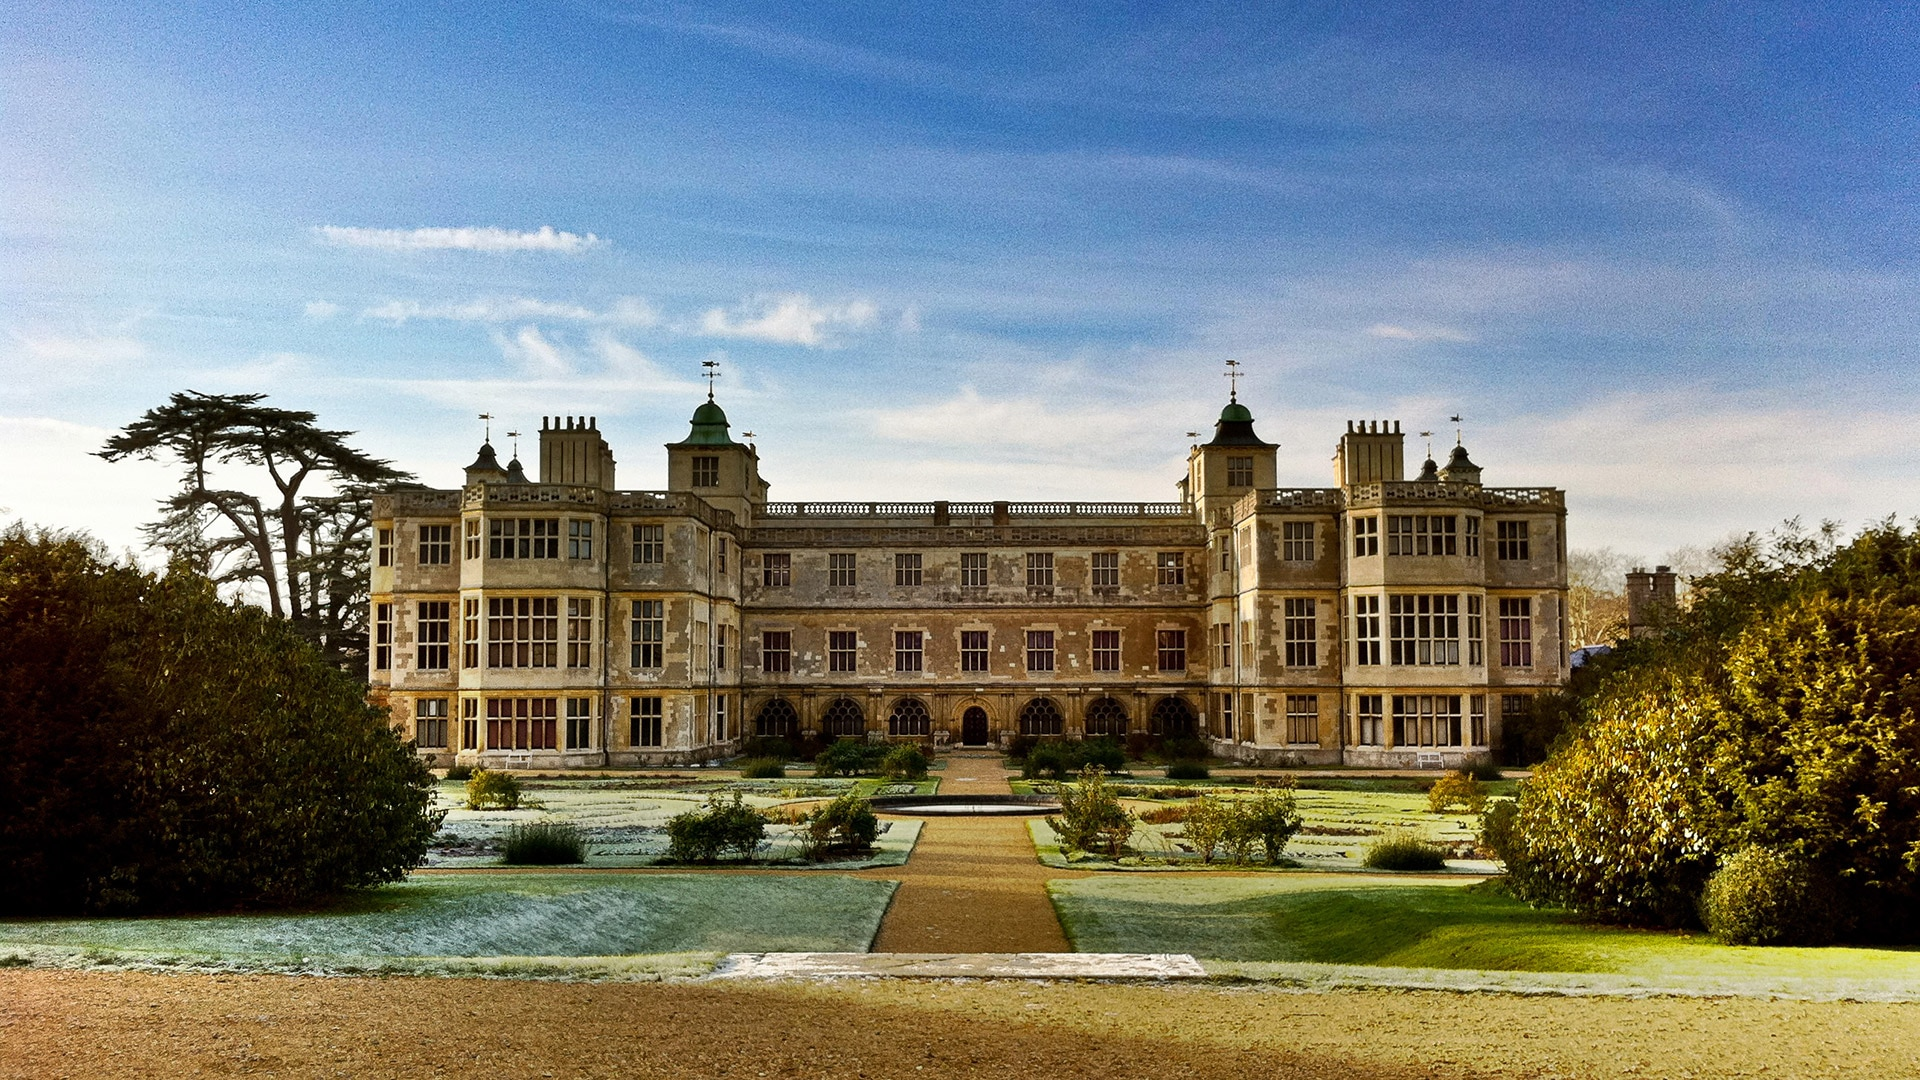 Audley End House and Gardens, Saffron Walden, Essex, England